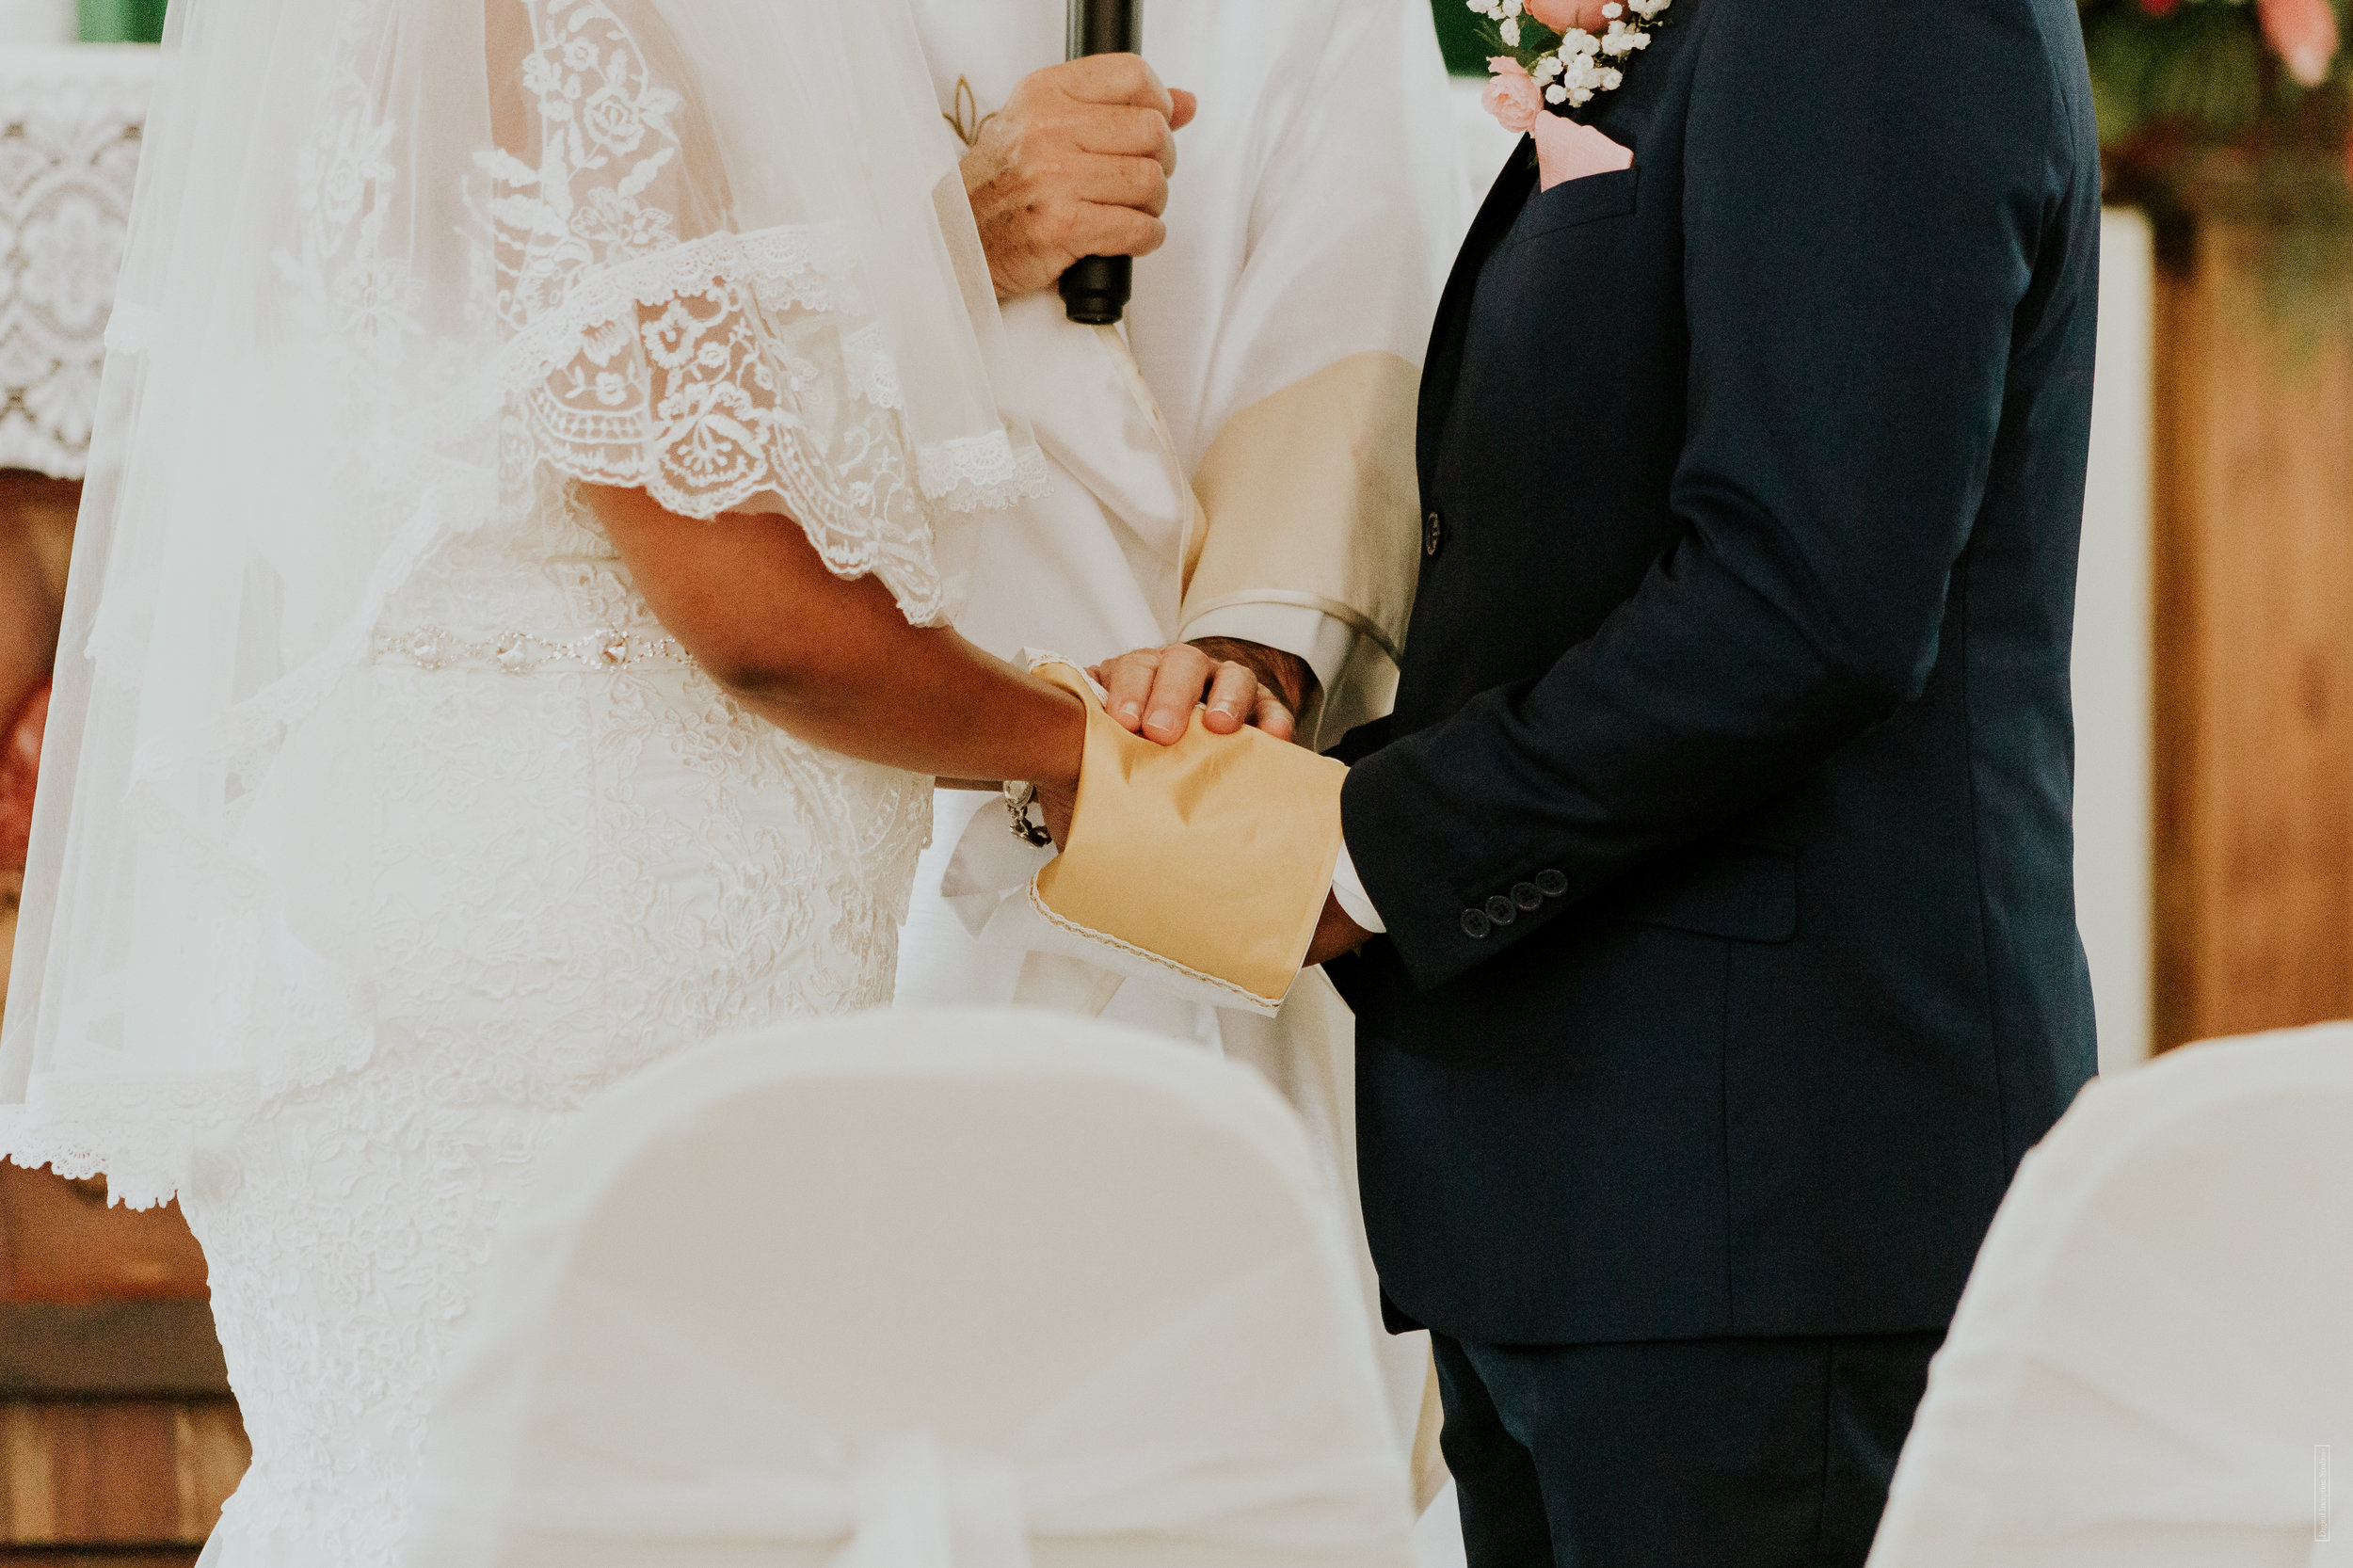 Our Wedding (The Reyes')-100.jpg